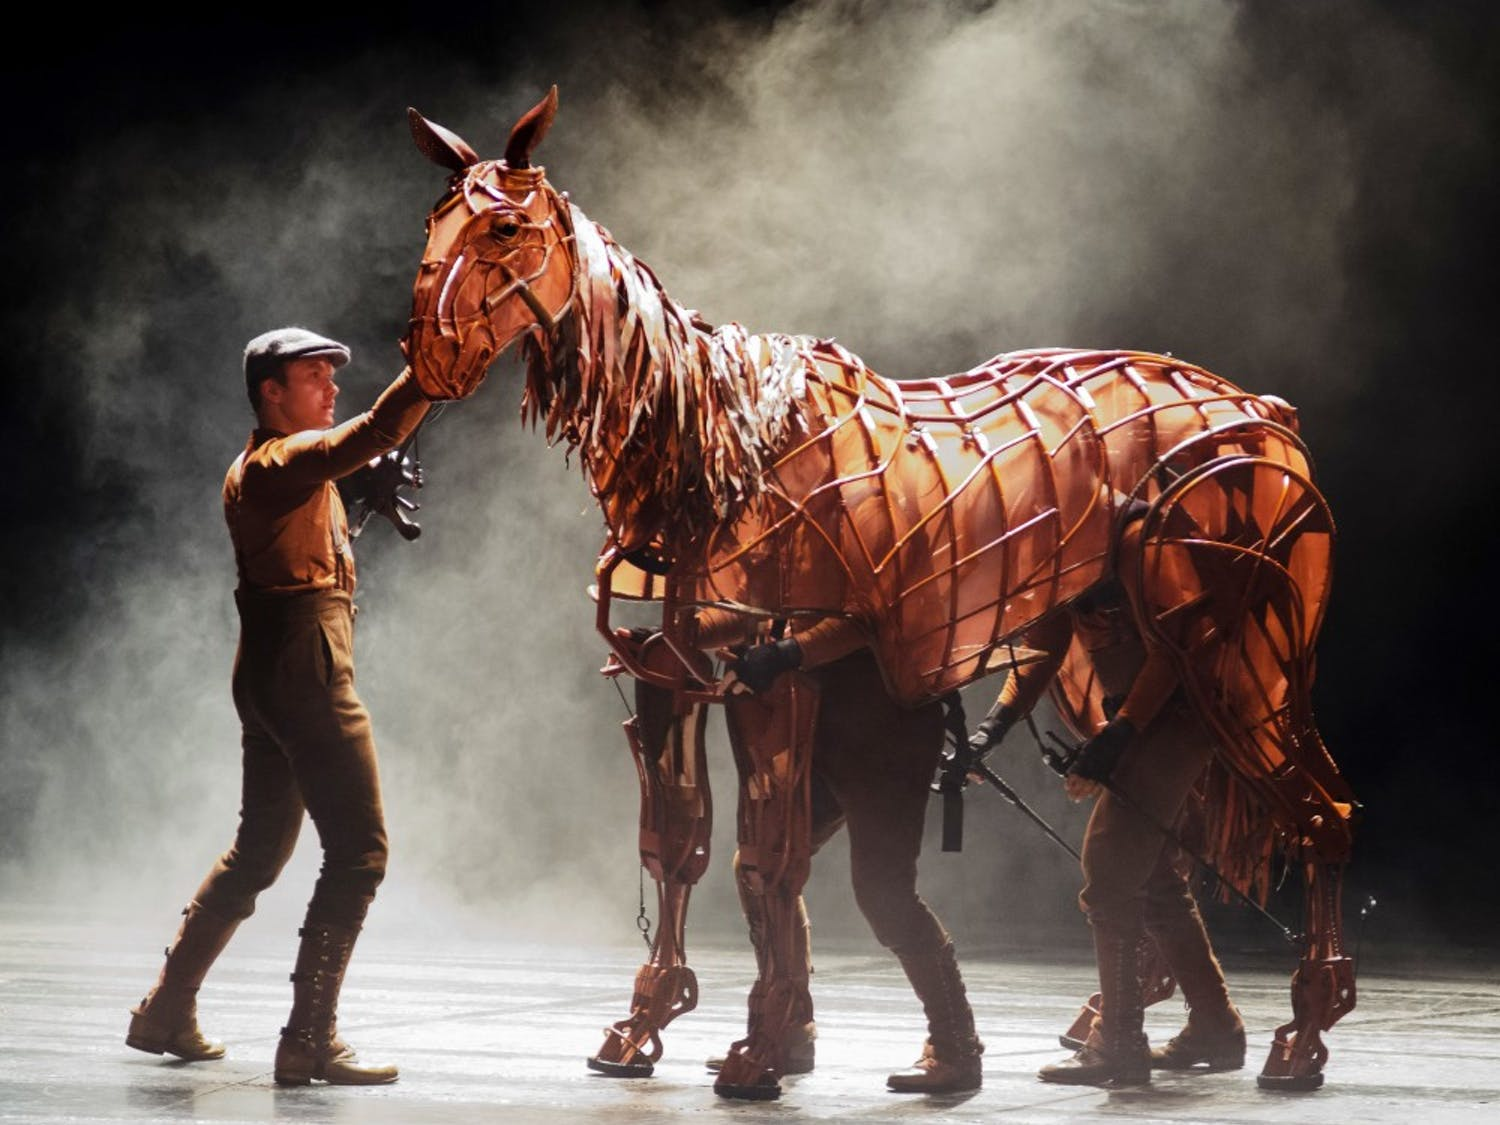 """Cast members perform during the opening night of the musical """"War Horse"""" at the Durham Performing Arts Center in Downtown Durham, NC on Tuesday, October 2nd 2012. The National Theatre of Great Britain produces the show that will run until October 7th."""